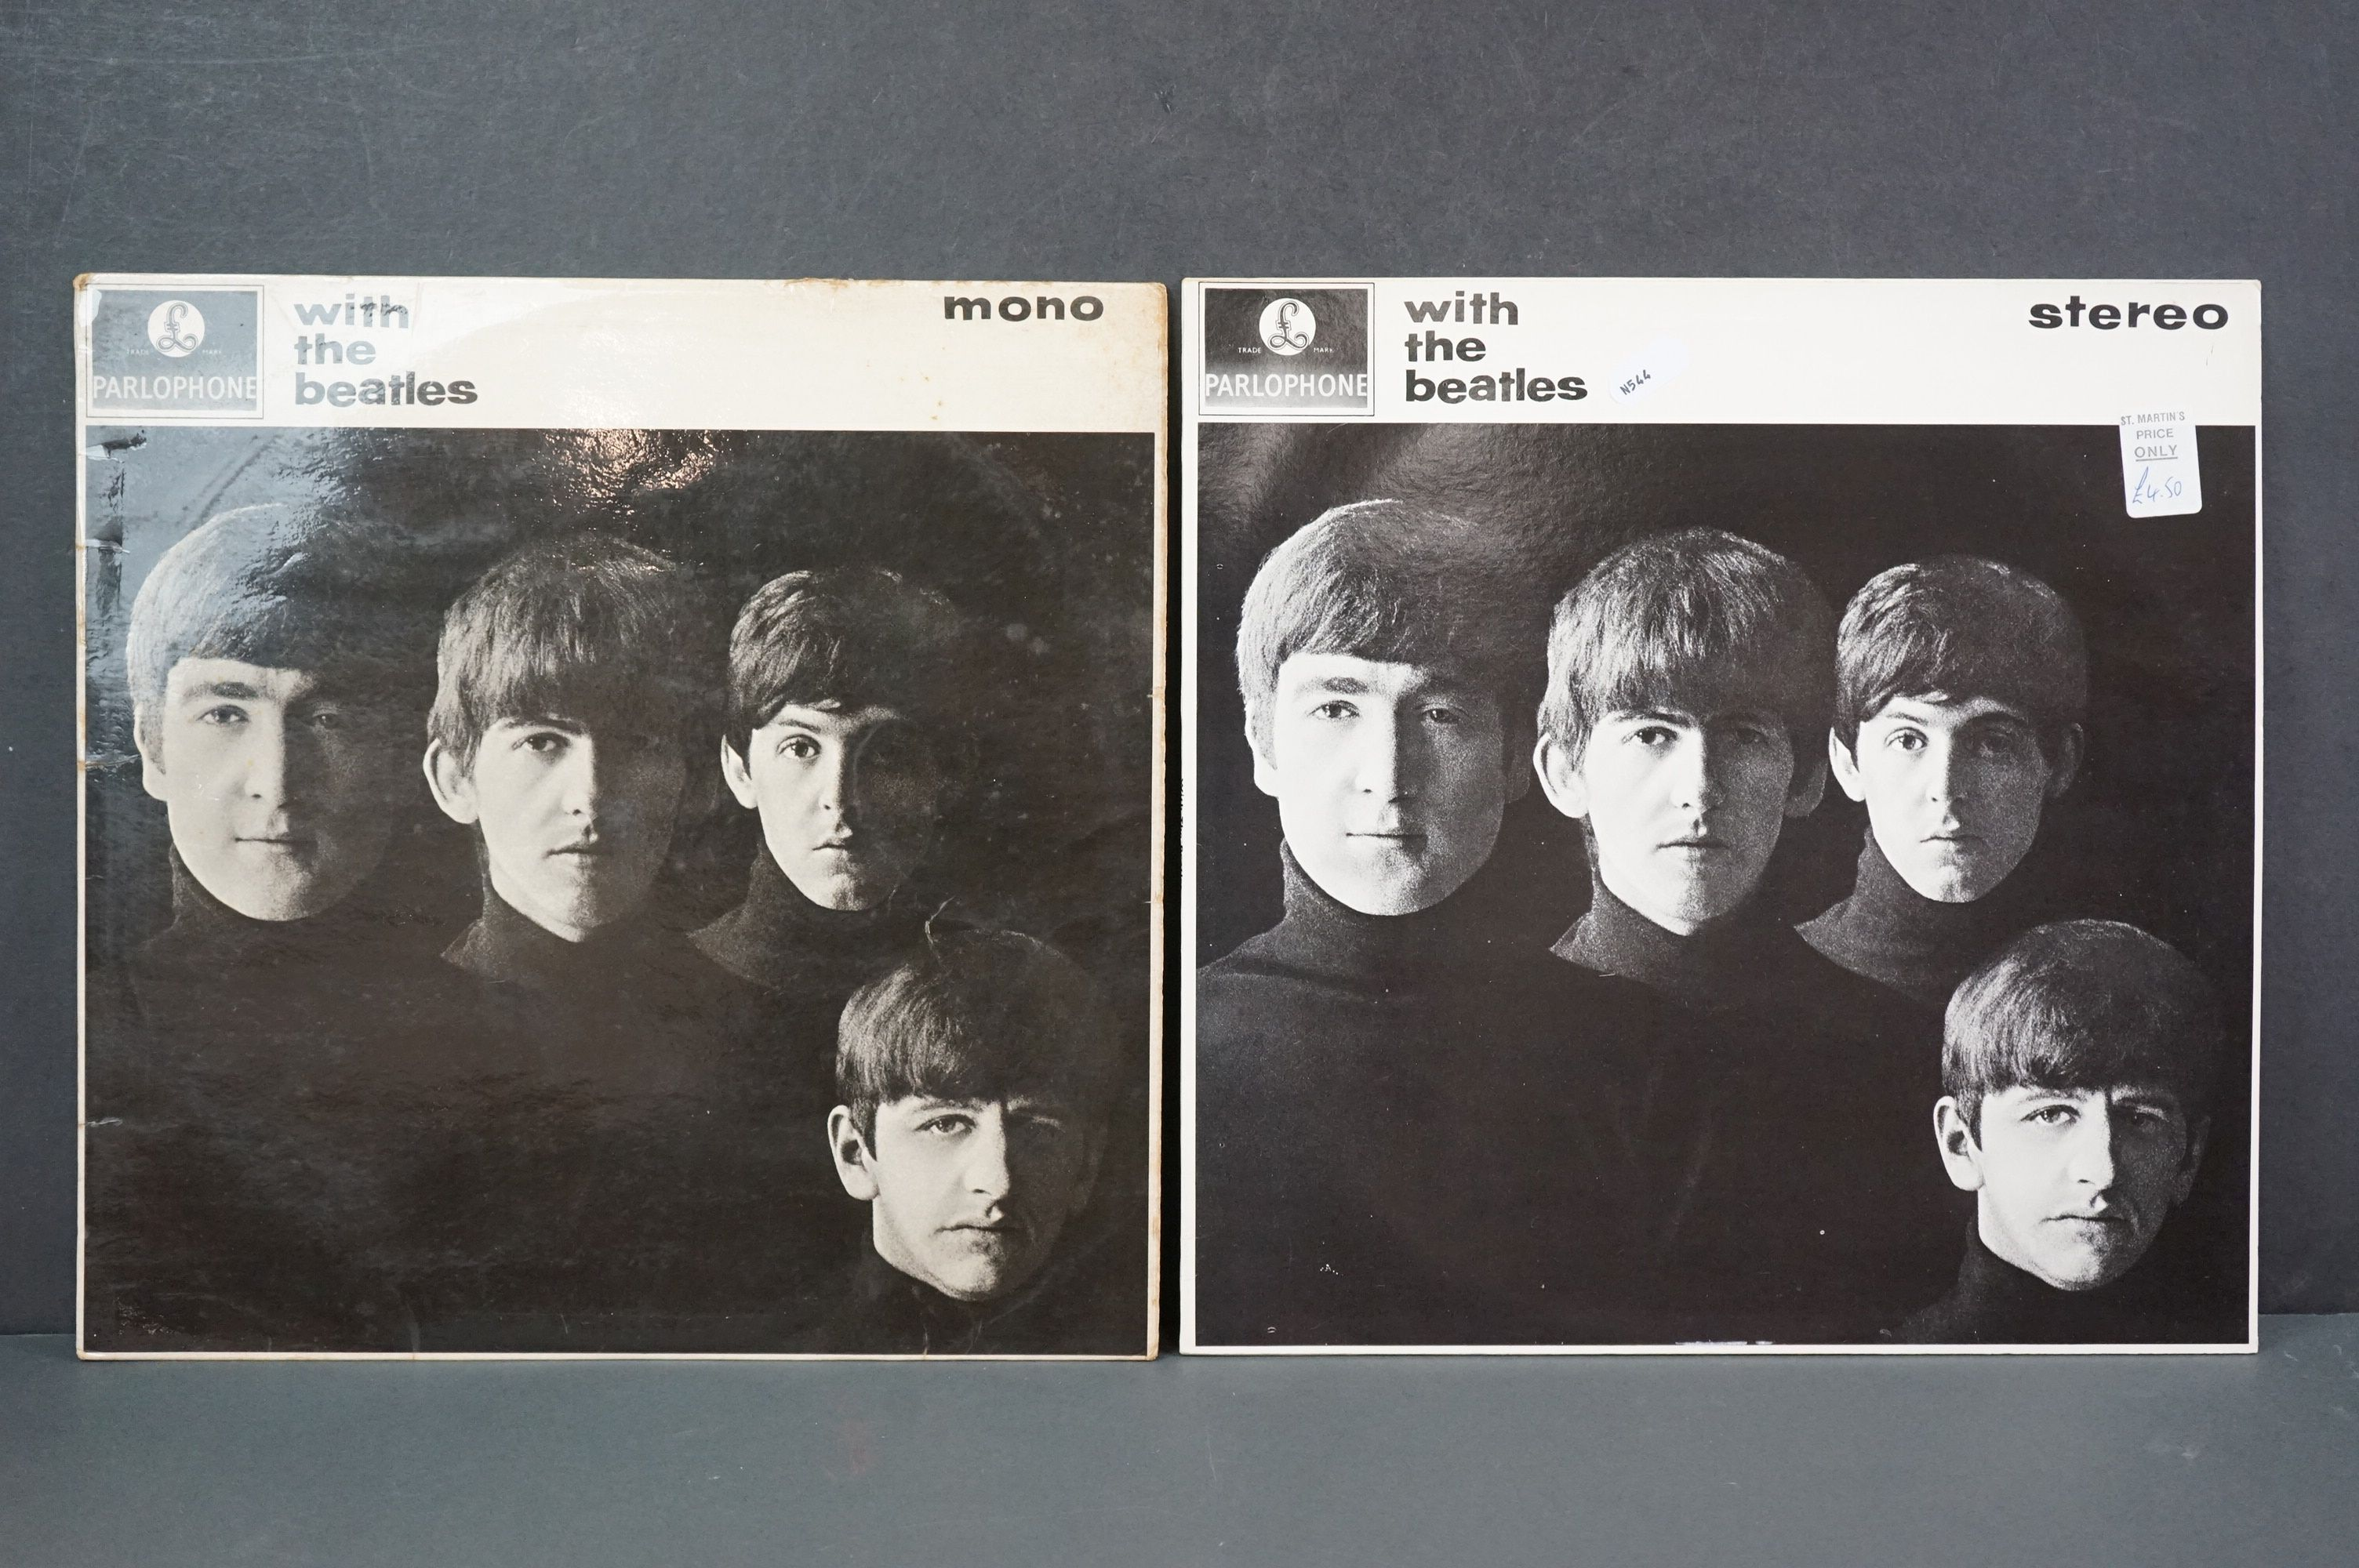 Vinyl - The Beatles With The Beatles x 2 copies to include PMC 1206, The Parlophone Co Ltd to